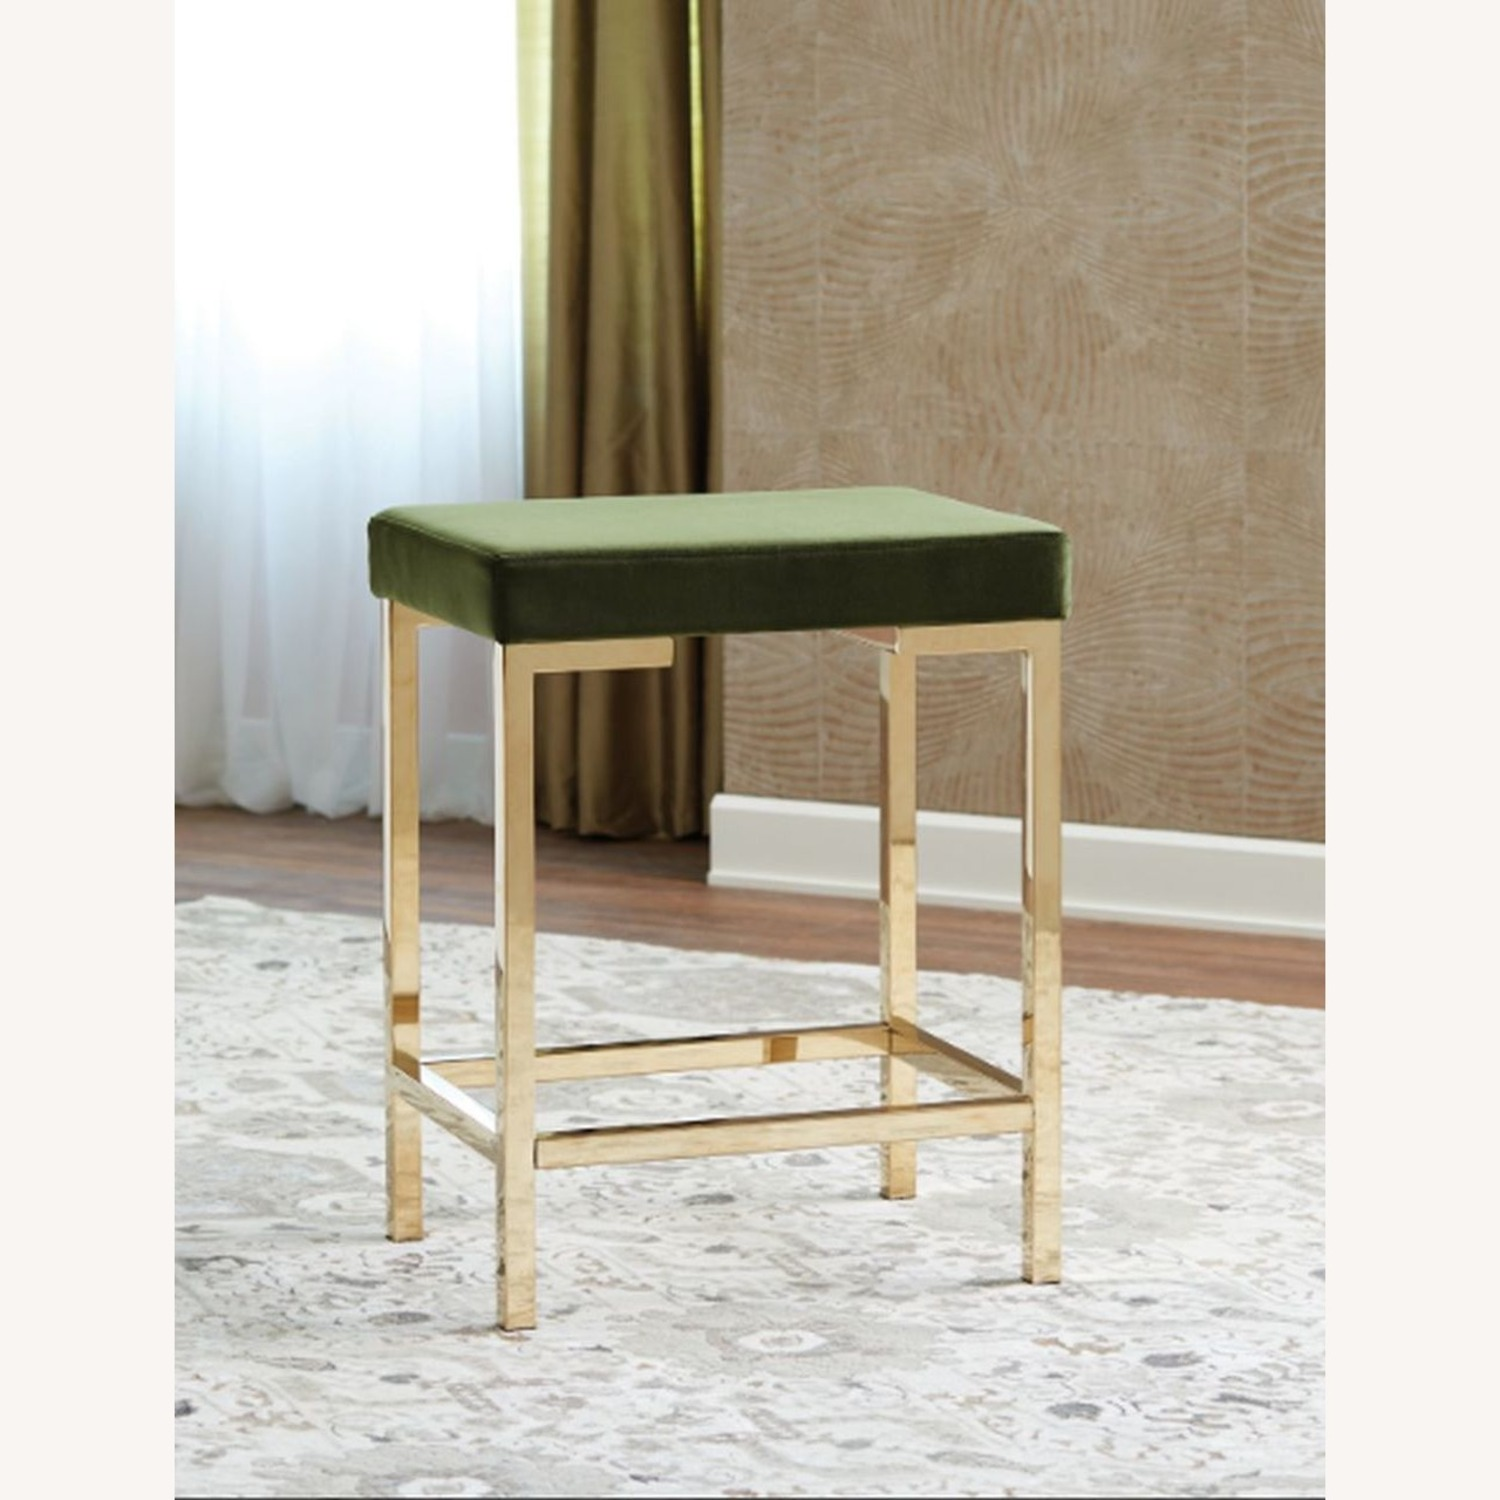 Minimalist Counter Height Stool In Green Fabric - image-2